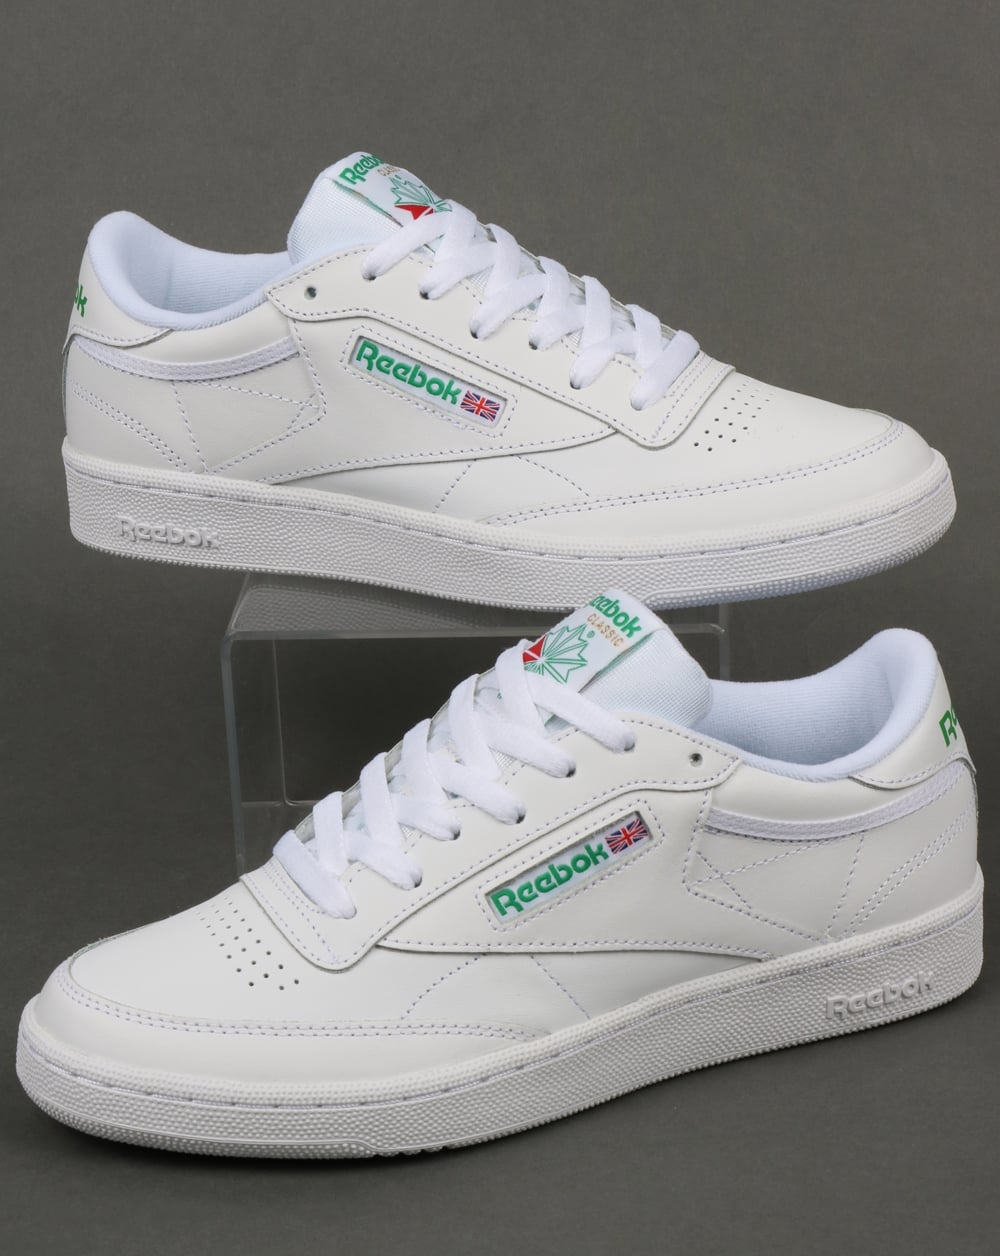 0ea7a5535d8c8 Reebok Club C 85 Trainers in White and Green